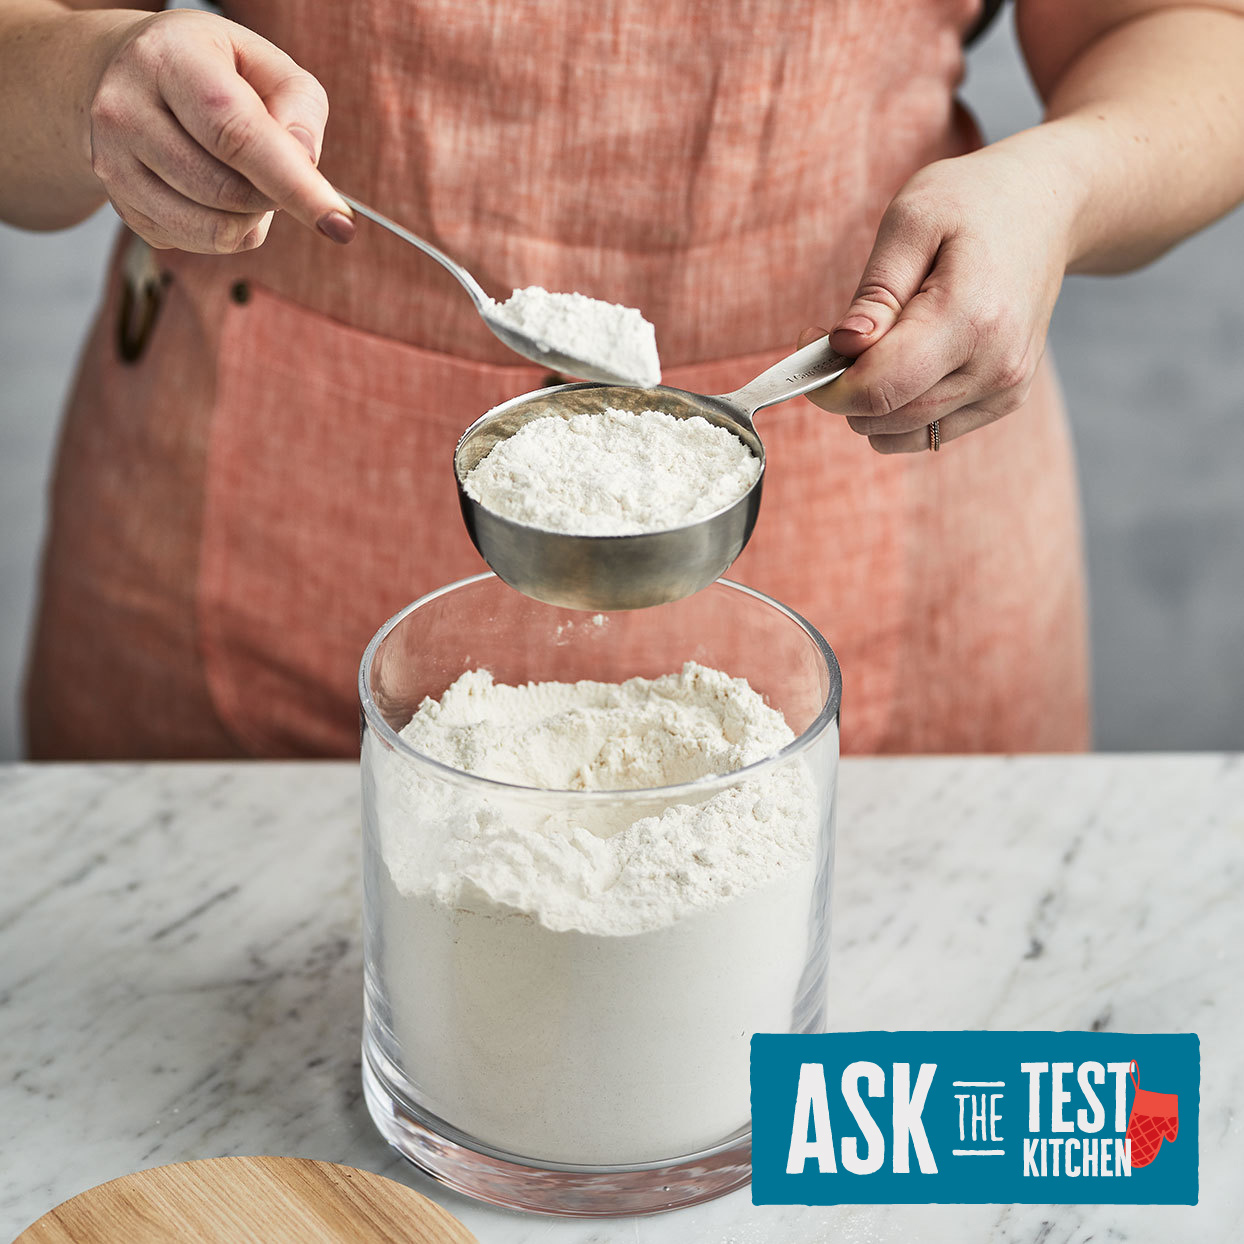 Learn the Right Way to Measure Ingredients for Baking